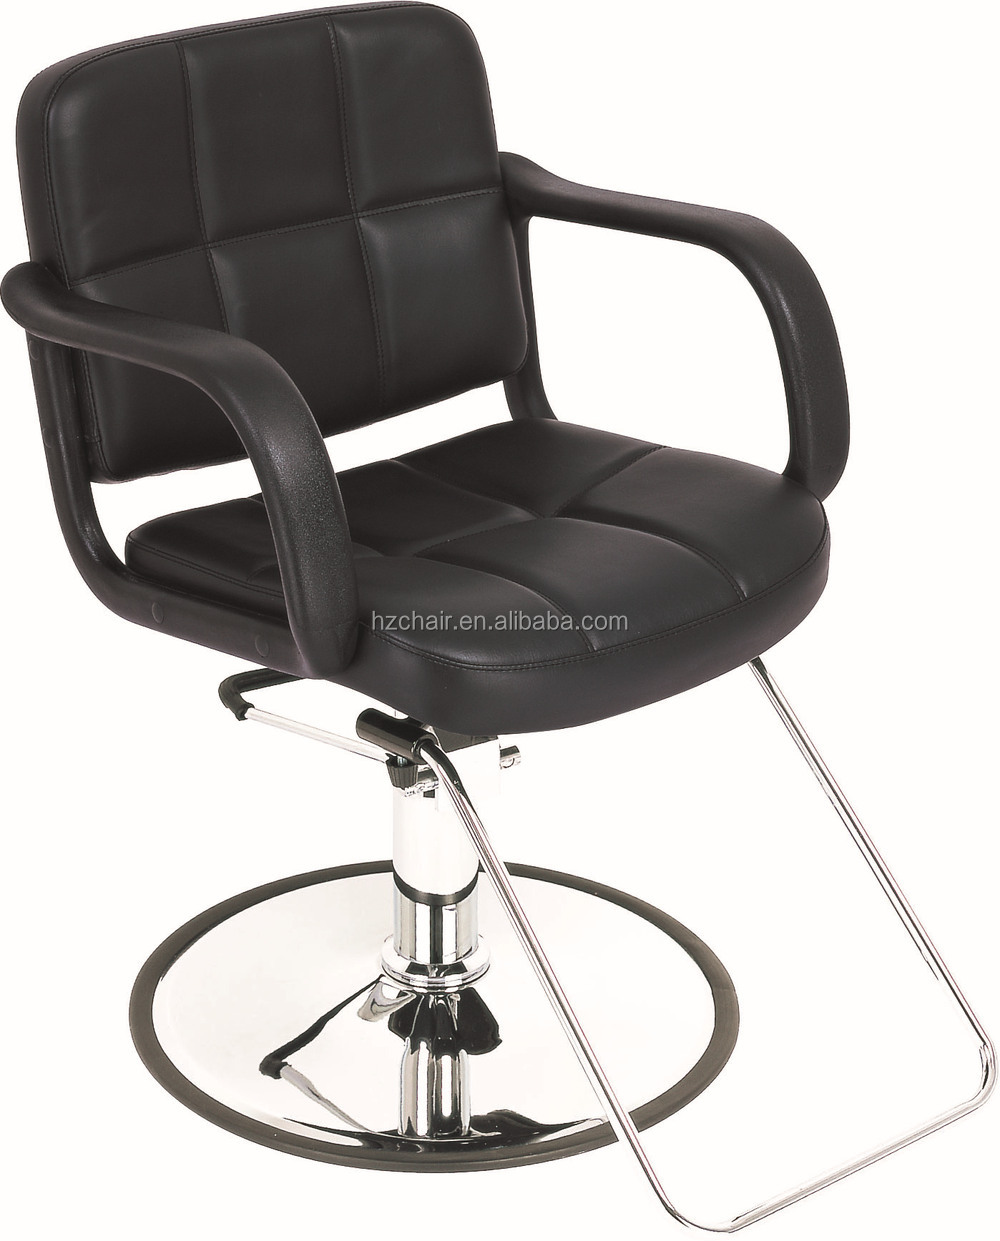 2015 Classic Portable Hairdressing chairs with hand shaped chairs/Popular black chairs  sc 1 st  Wholesale Alibaba & 2015 Classic Portable Hairdressing Chairs With Hand Shaped Chairs ...